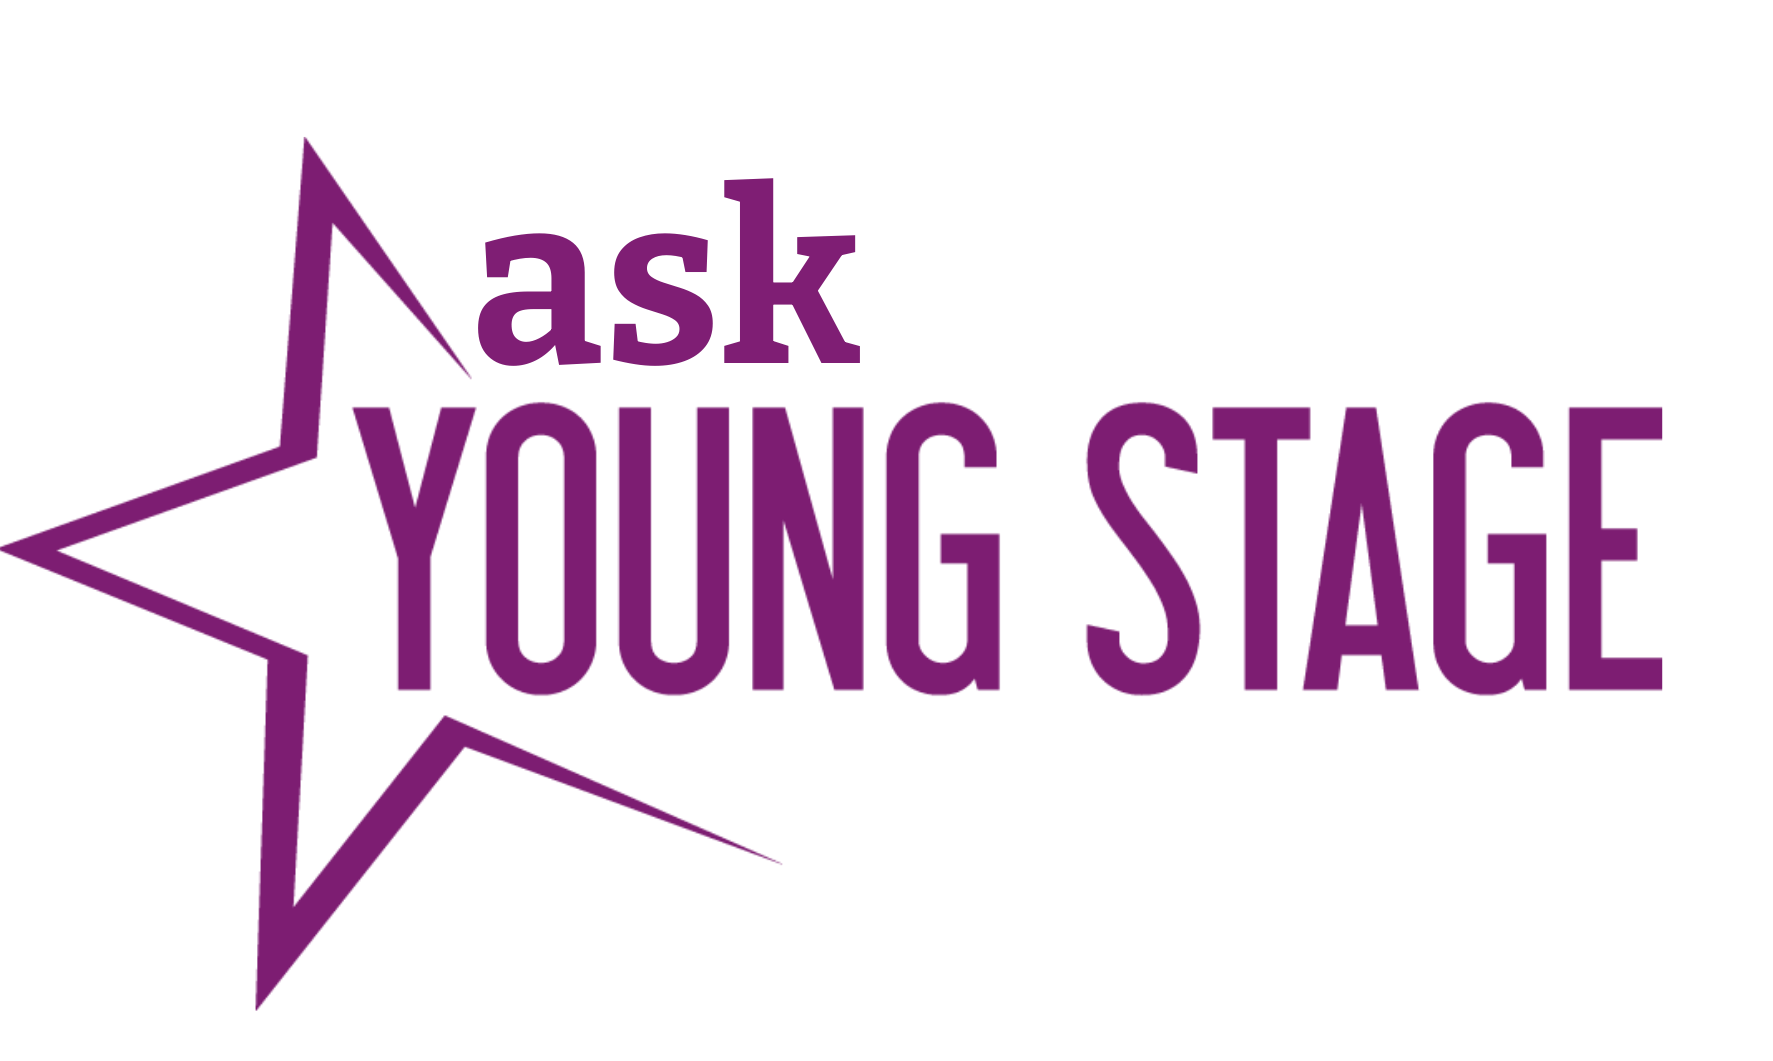 ASK YOUNG STAGE Rubrik